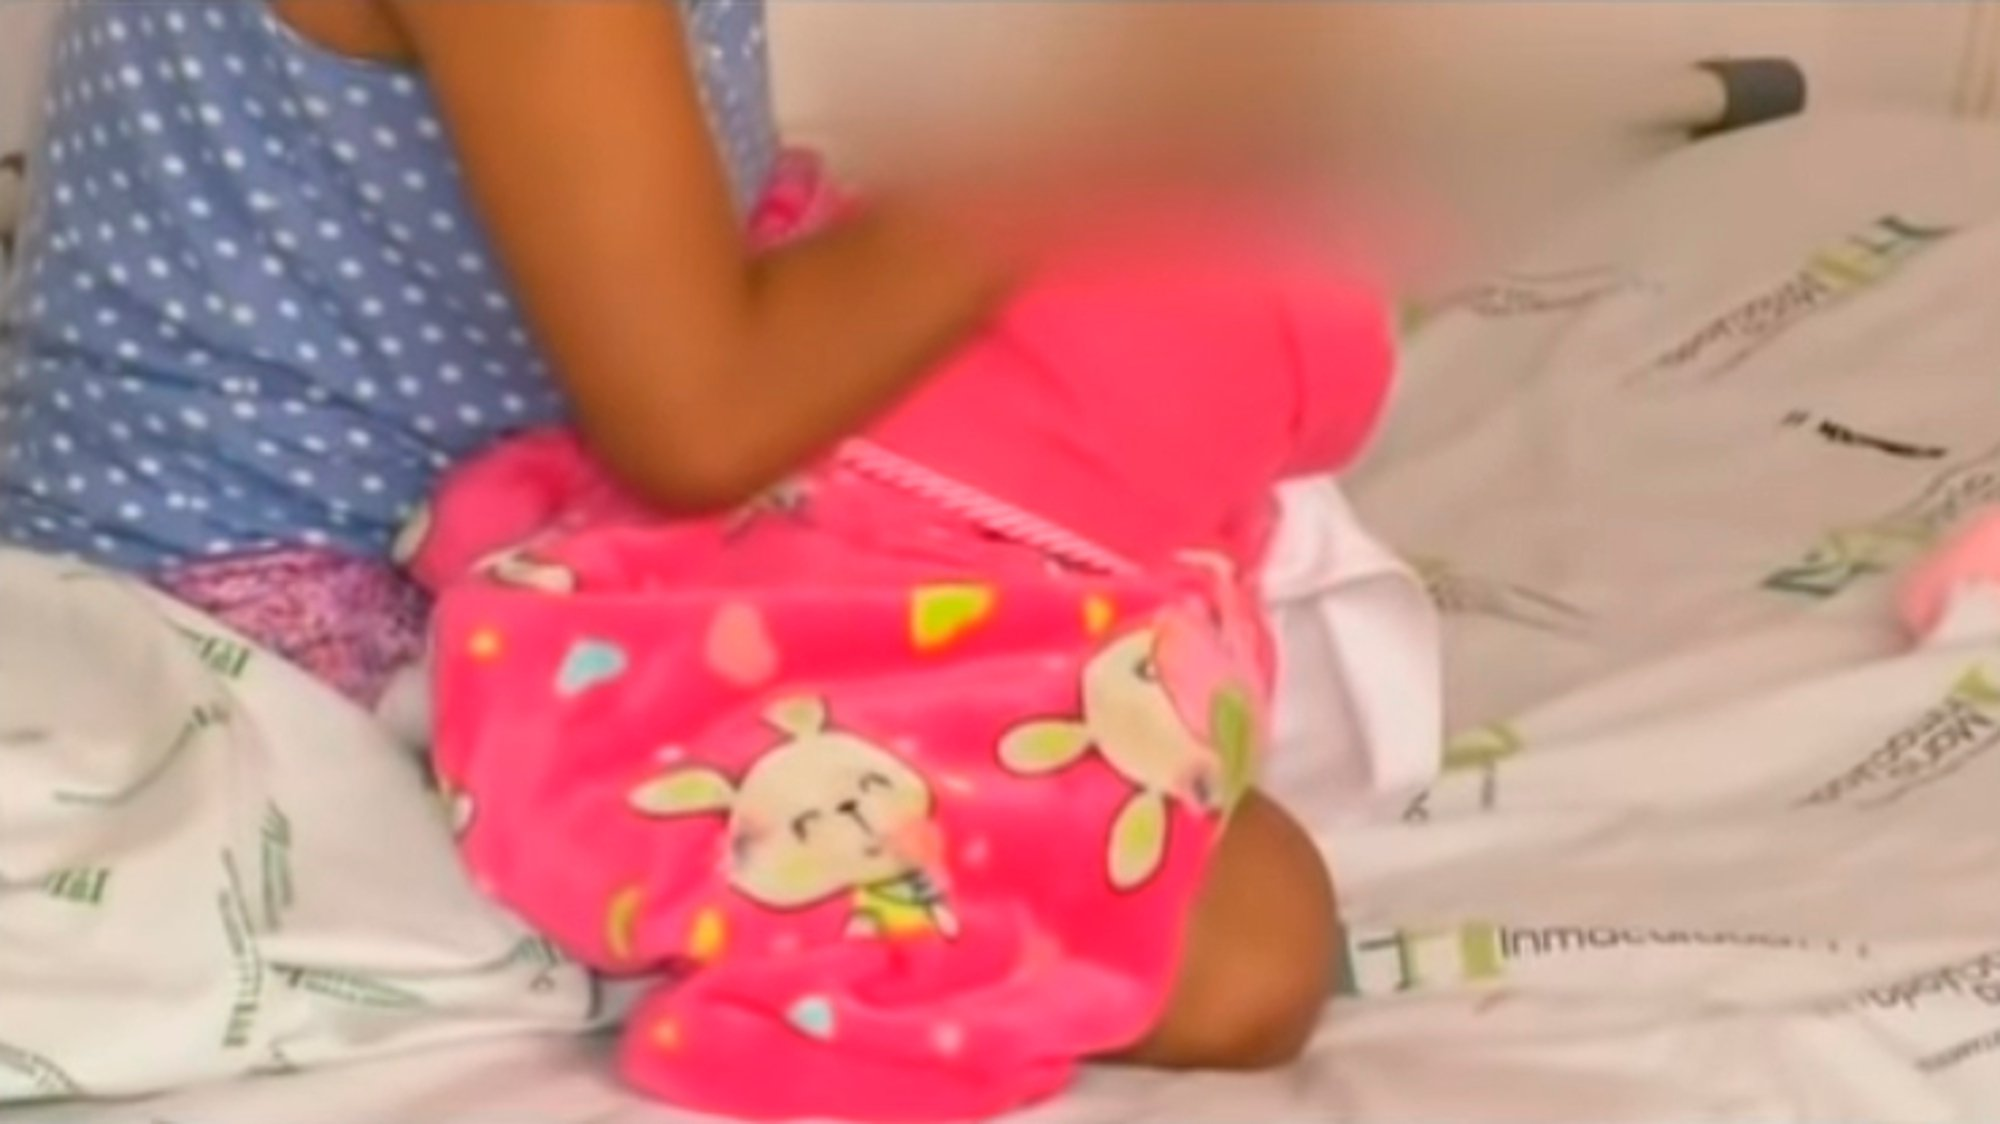 """Pic shows: The girl gave birth after sexually abused by brother. A 10-year-old girl who was allegedly raped by her older brother has given birth to a baby boy. The incident occurred in the town of Puerto Leguizamo in the south-western Colombian department of Putumayo where the girl, whose identity has not been revealed, lived with her parents. She was taken to a hospital in the borough of Florencia where she had a C-section and gave birth to a son. Hospital director Camilo Diaz told local media: """"According to the information we have received from the police, the minor became pregnant after she was sexually abused by a family member, apparently her brother."""" Both the baby boy and his 10-year-old mum are reportedly doing well. According to local media, the girl???s parents did not want to report their son to the local authorities. Meanwhile, the investigation into the claims of child abuse continues. Netizen ???JToJudith??? commented: """"How is it possible that the girl???s parents did nothing about the rape and subsequent pregnancy? The parents and brother should go to prison and the baby boy should be adopted because he is not wanted by a young girl who does not even understand what motherhood is."""""""